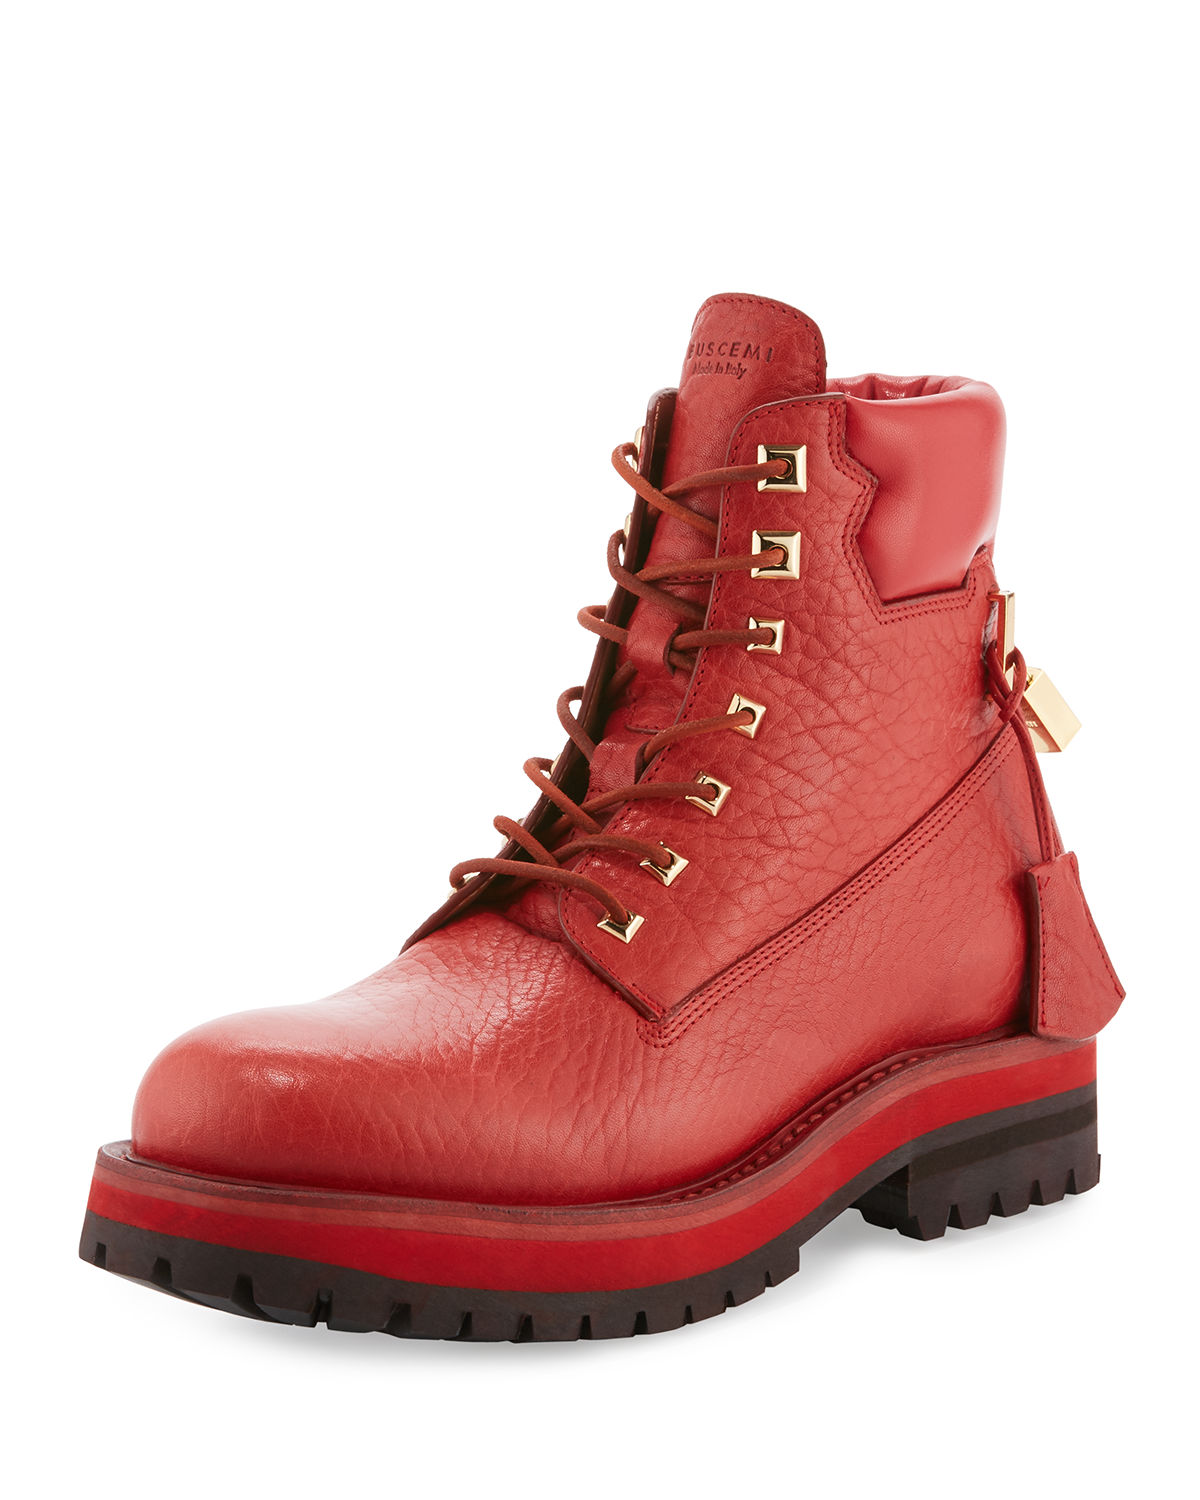 Buscemi Site Leather Lace Up Hiking Boots Malibu Mart